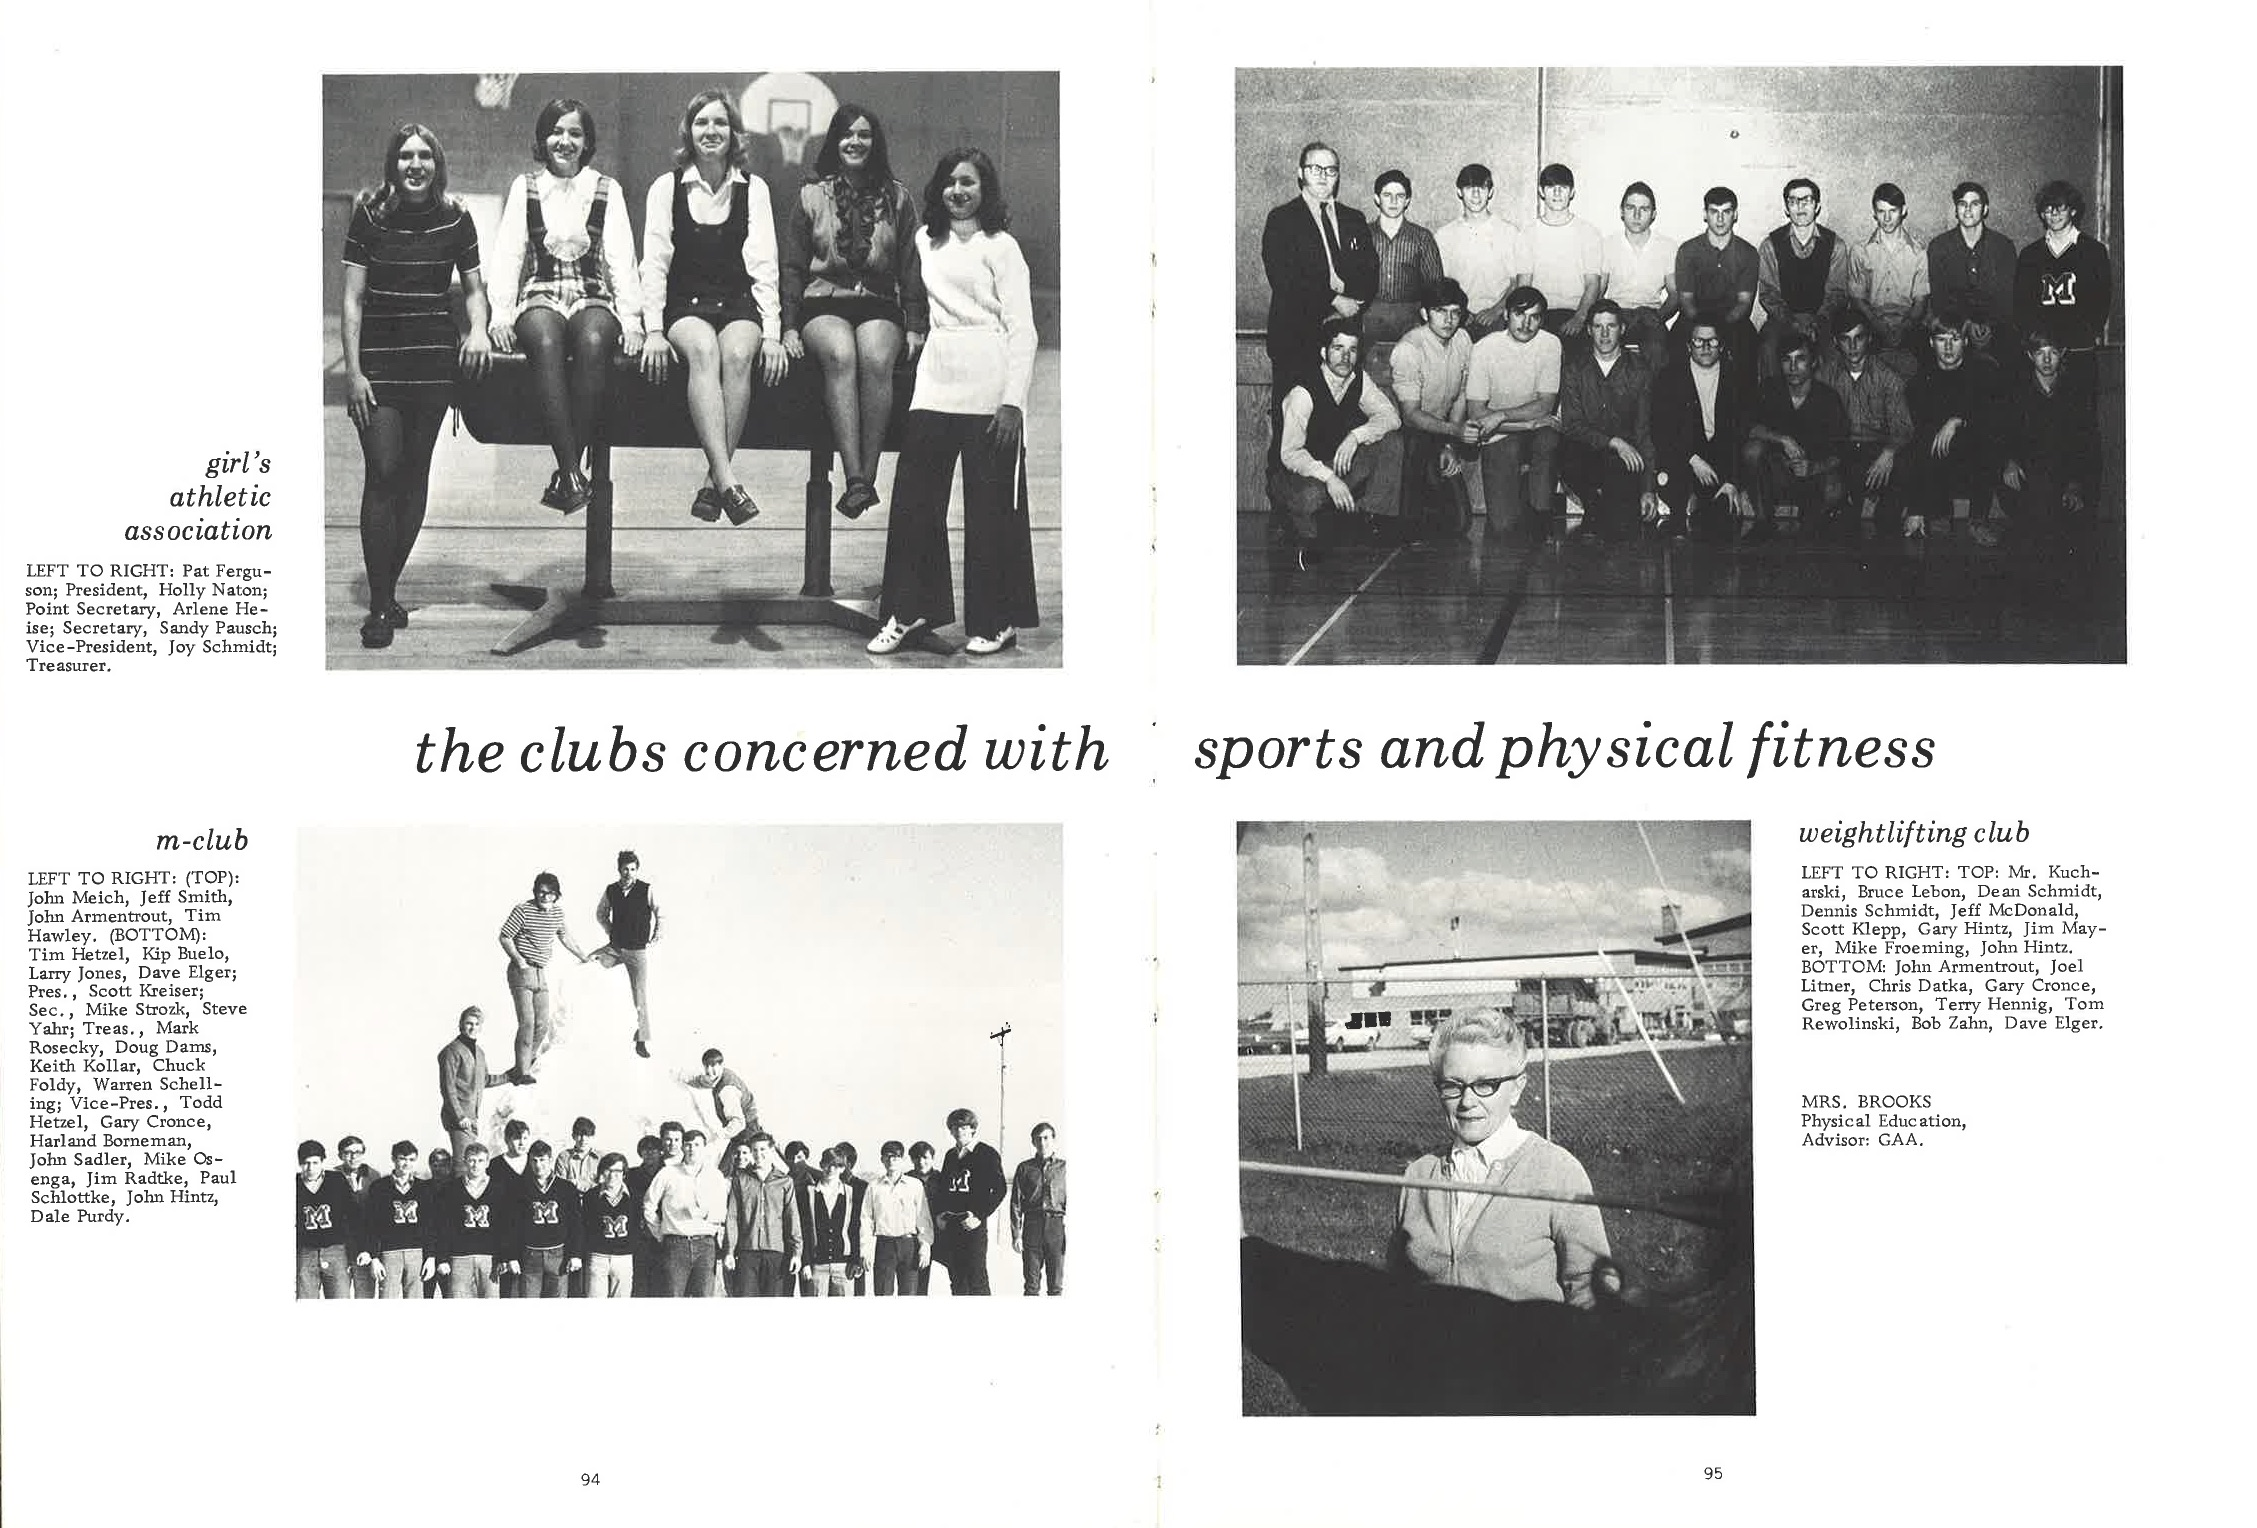 1971_Yearbook_94-95.jpg